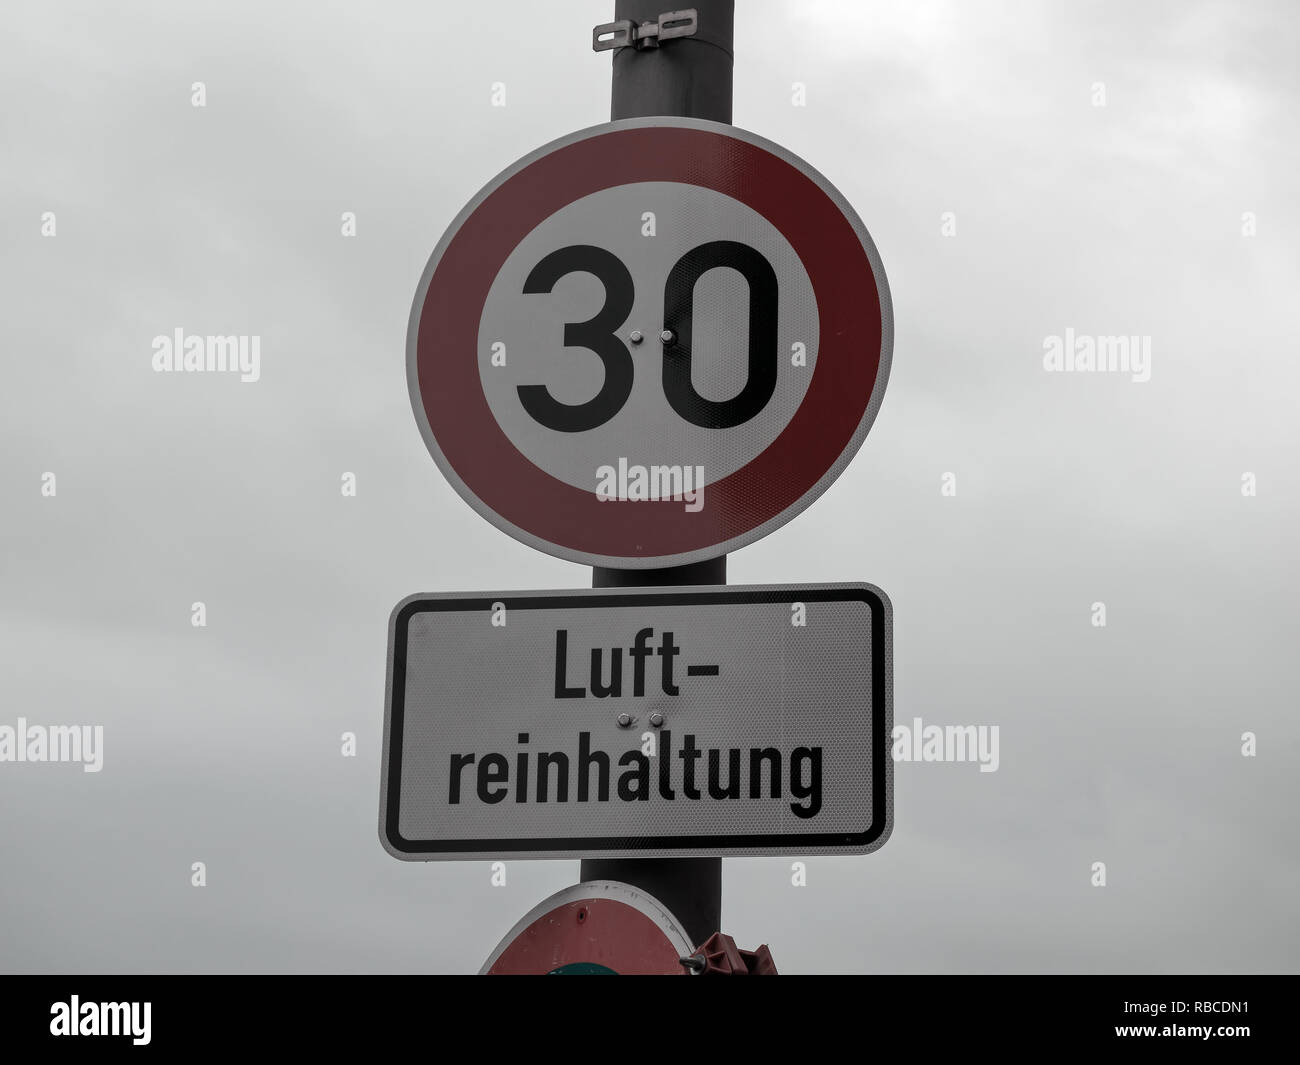 Traffic Sign Speed Limit 30 For Luftreinhaltung, Meaning Air